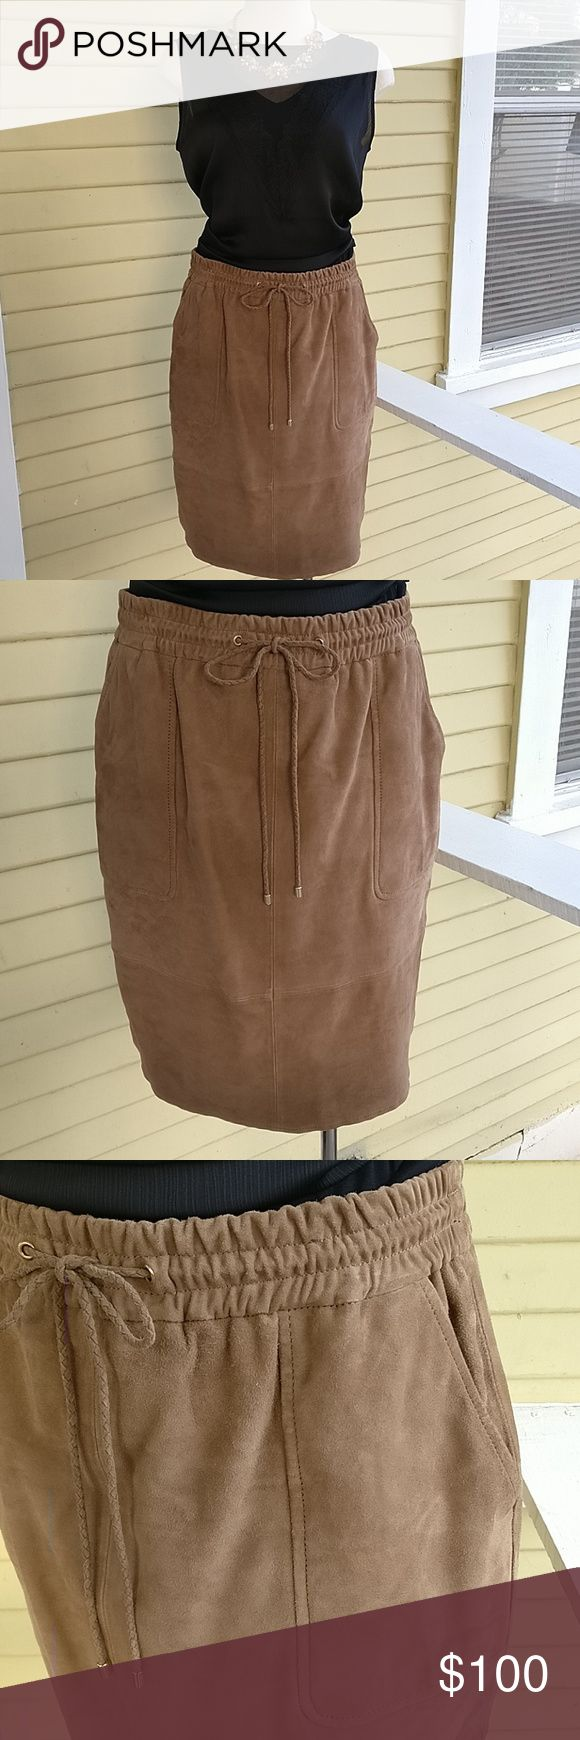 """Massimo Dutti $245 REAL leather drawstring skirt Gorgeous!! Soft and light! Fully lined. 22"""" long.  A closet standard for years to come! Massimo Dutti Skirts Midi"""